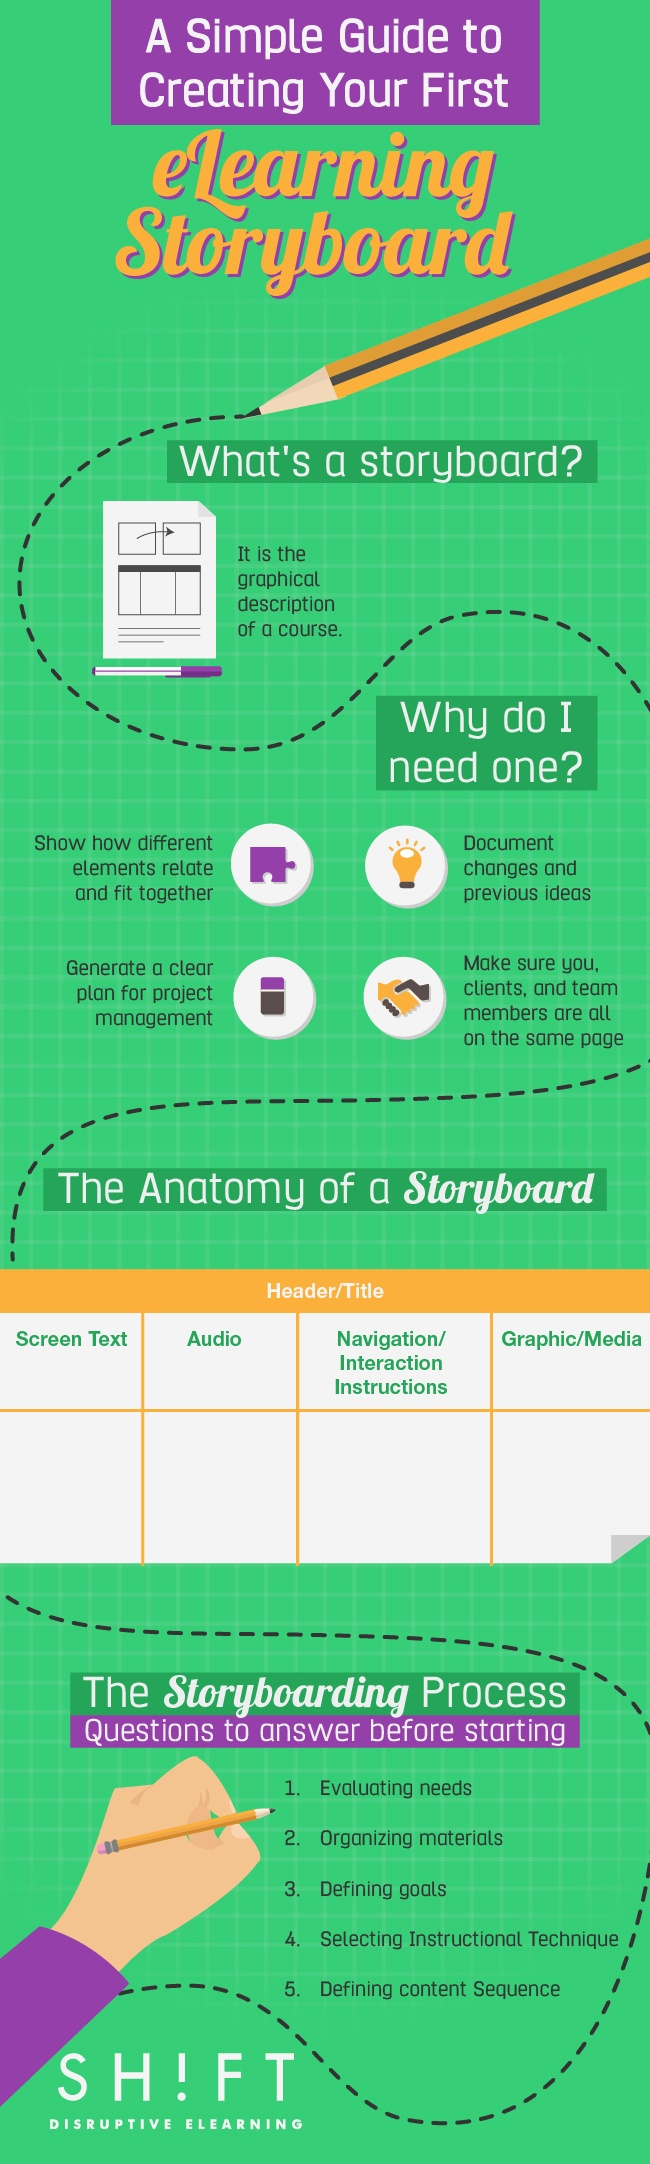 How To Create Your First eLearning Storyboard Infographic